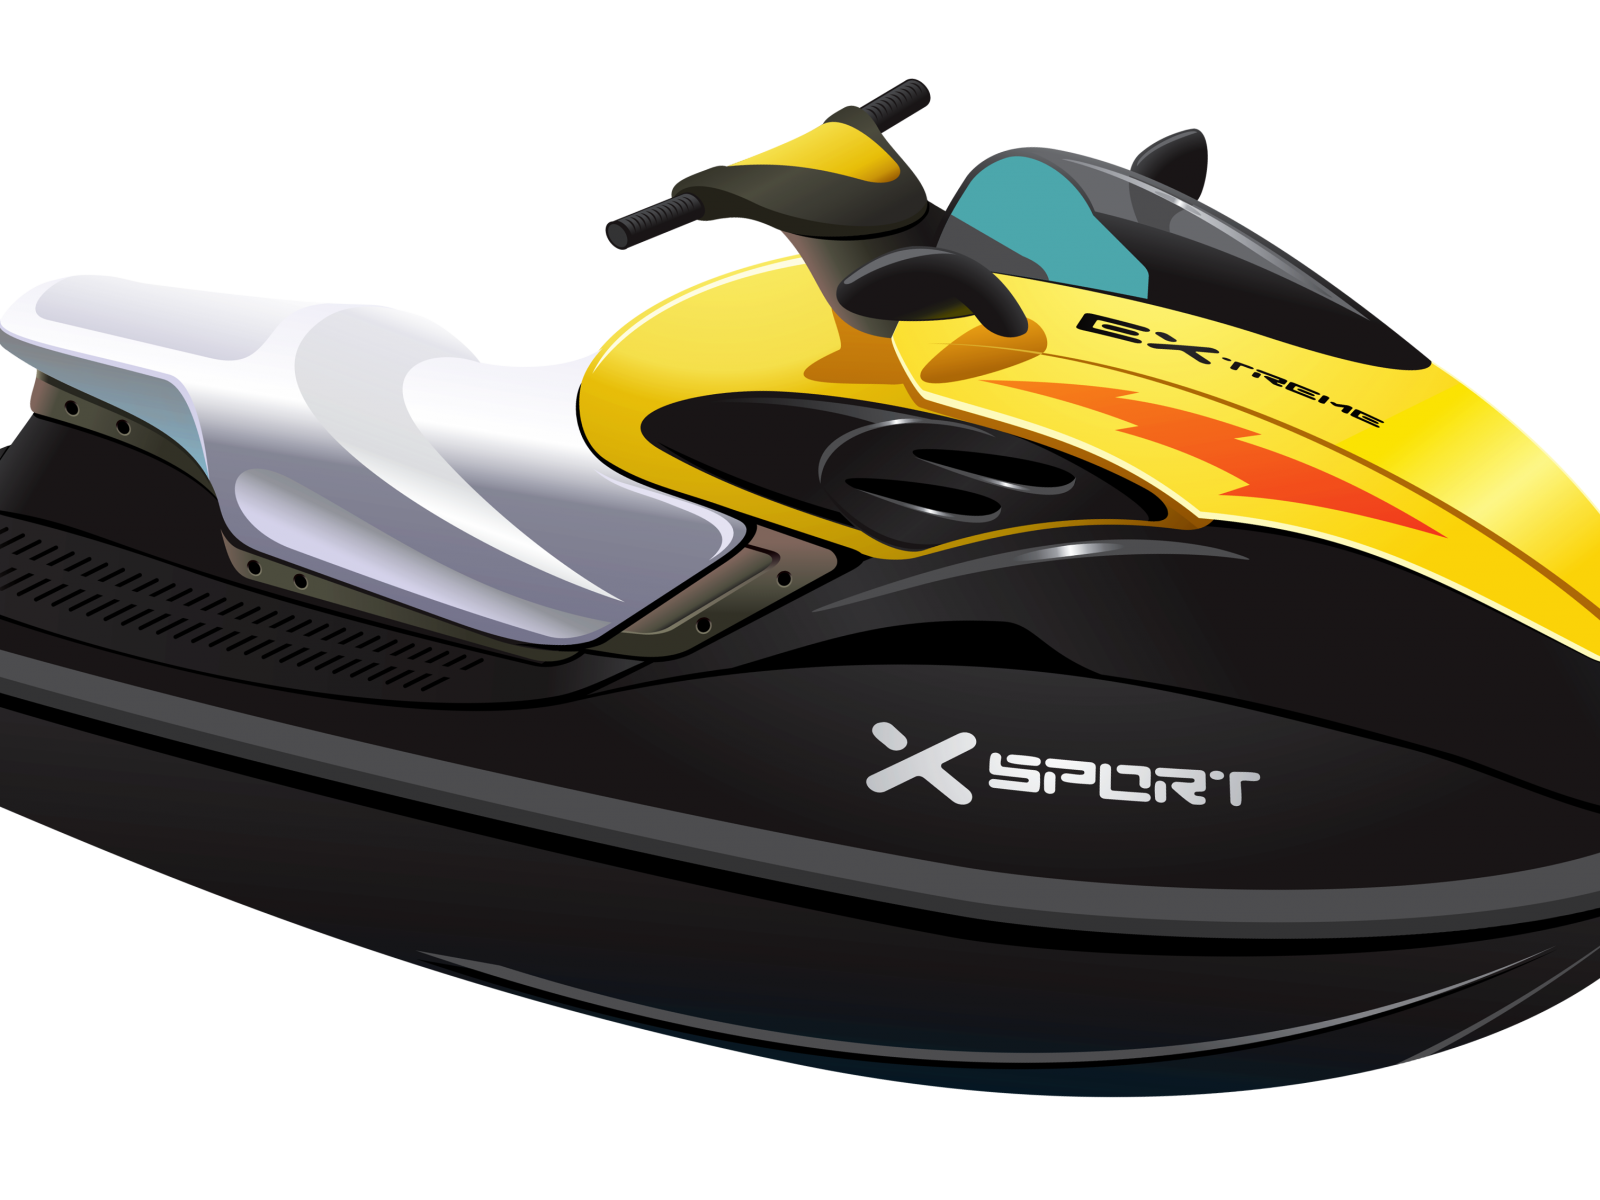 Clipart boat ski boat. Speed cliparts x carwad